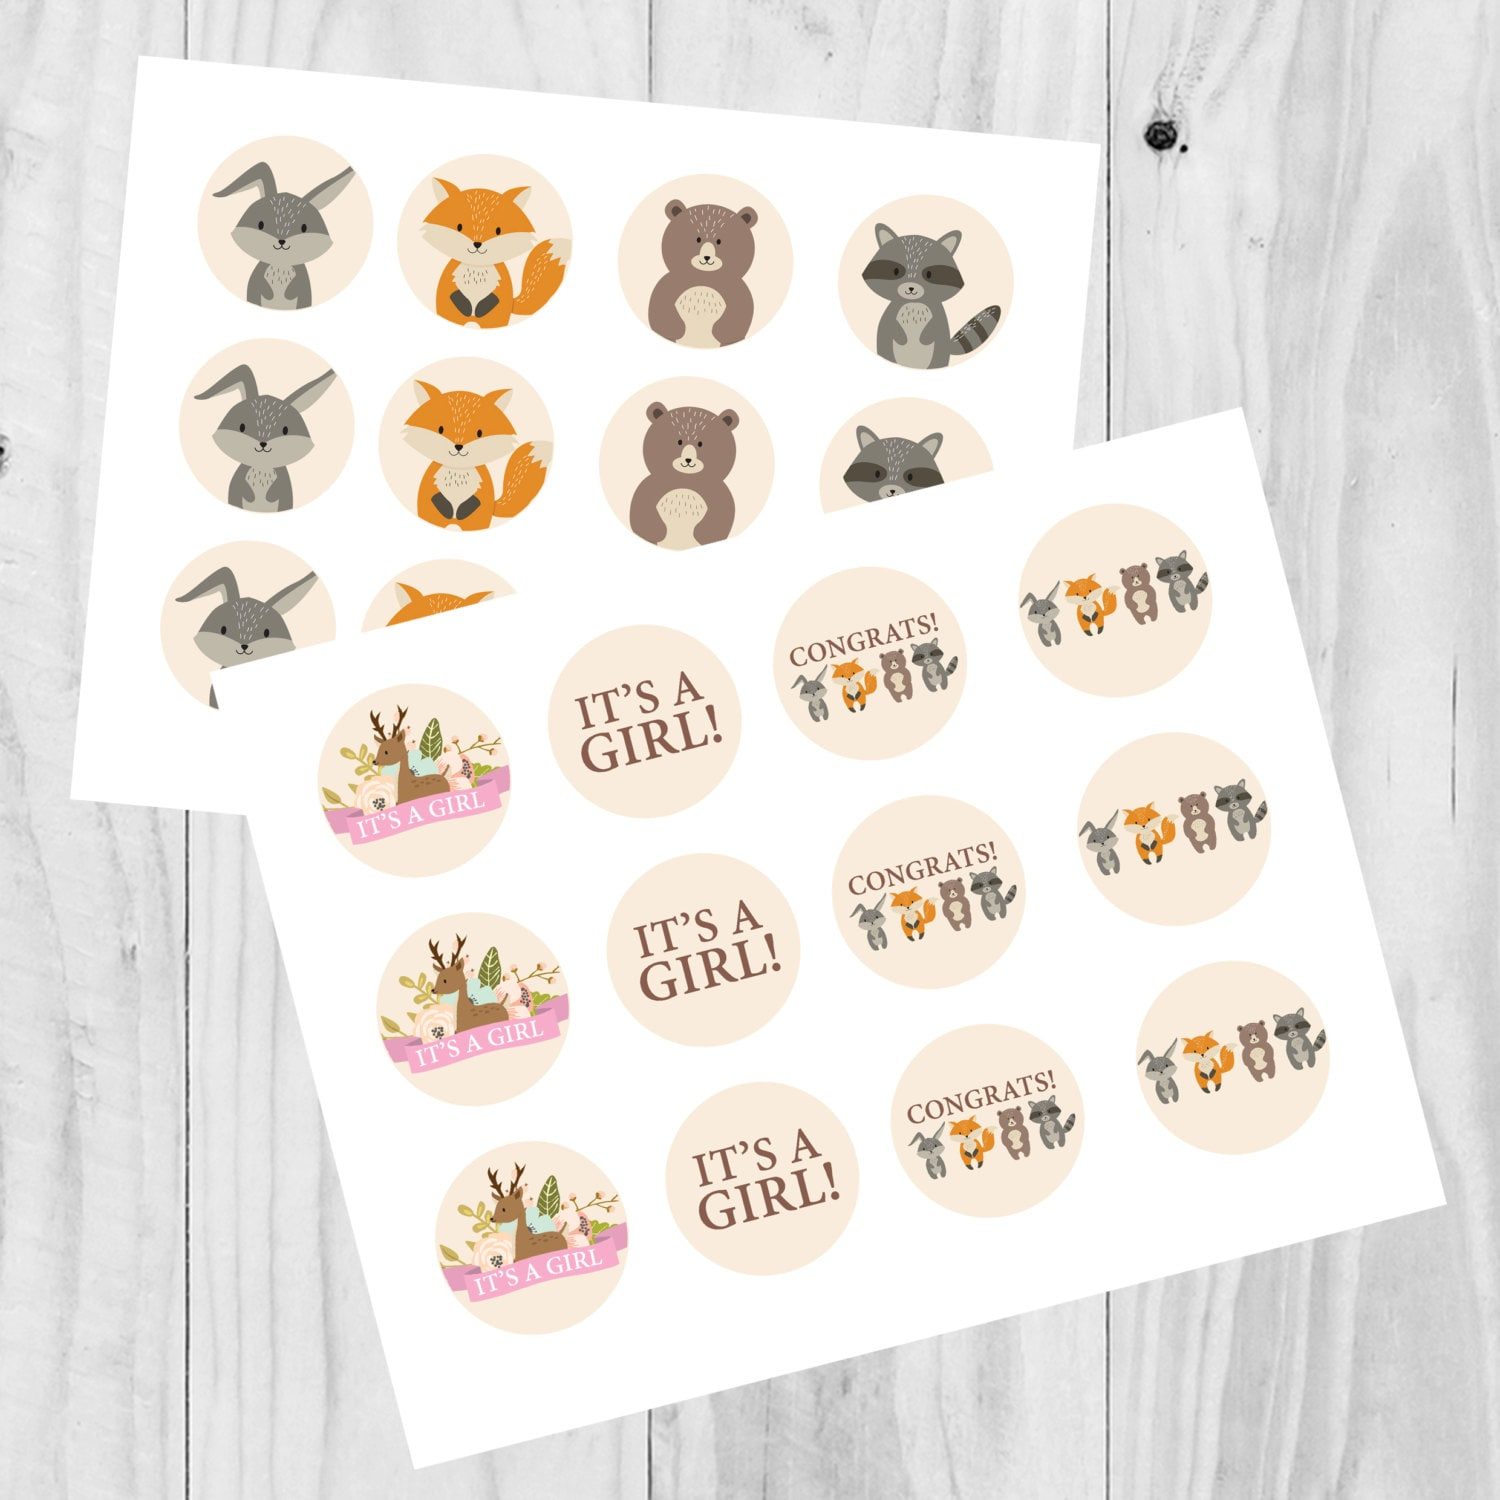 Instant Download Woodland It/'s a Girl Baby Shower Cupcake Wrappers Floral Baby Shower Woodland Decorations